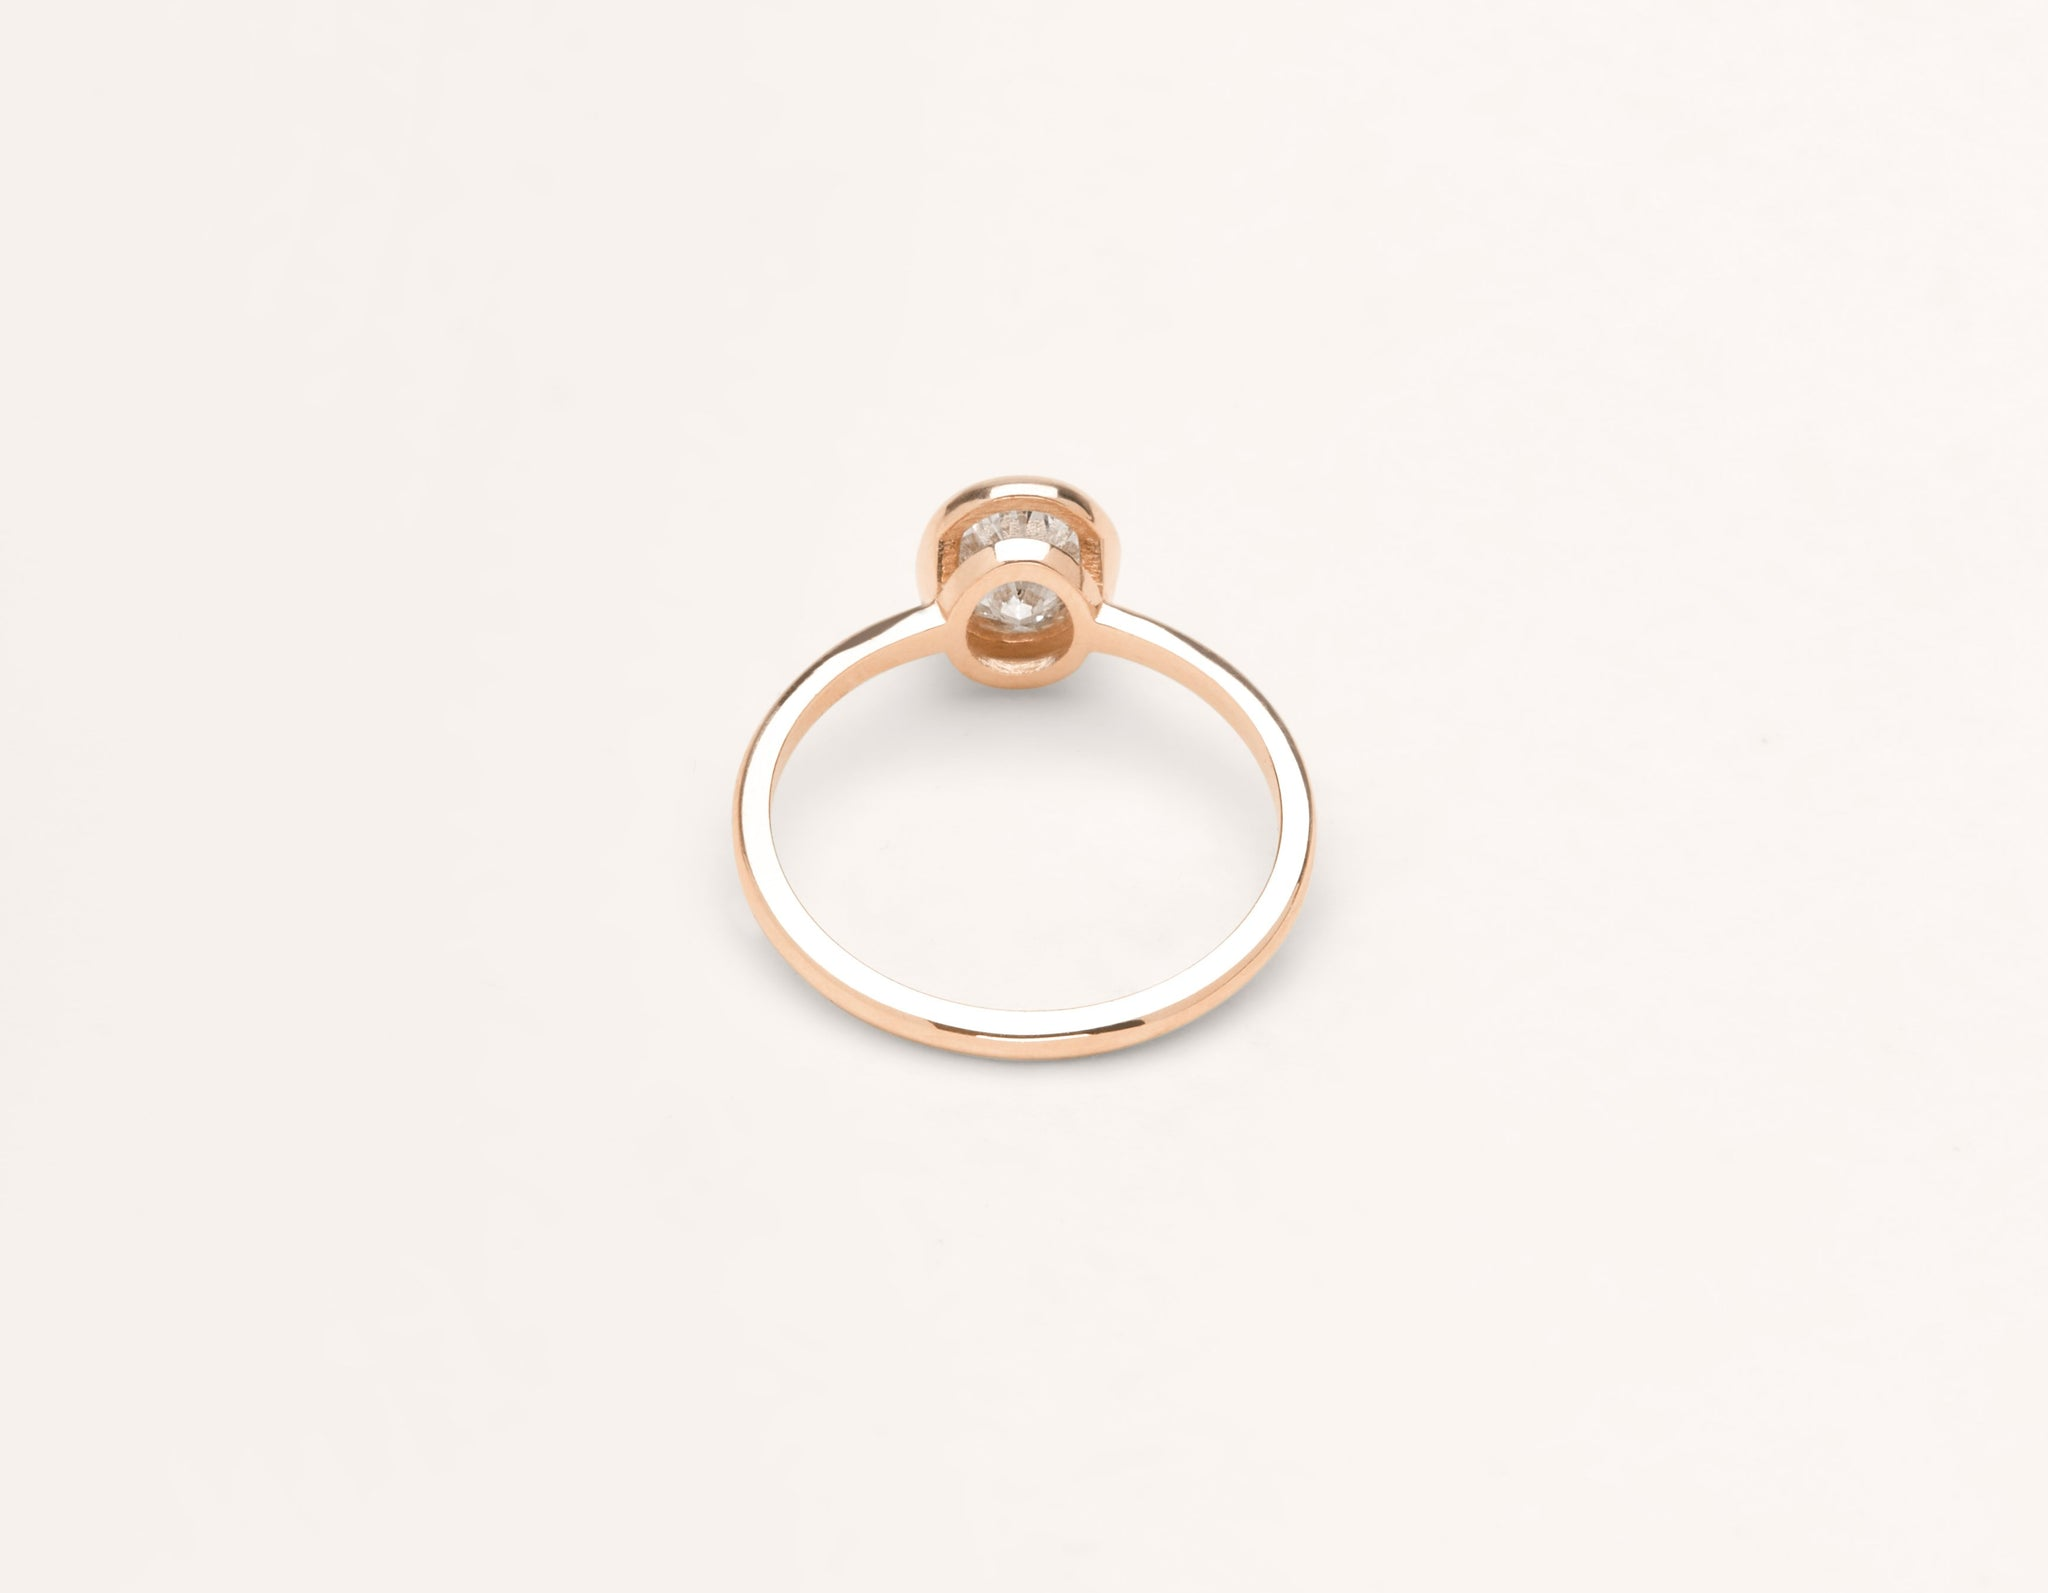 Vrai & Oro 18k solid rose gold Diamond engagement ring Oval Bezel simple classic band bezel setting